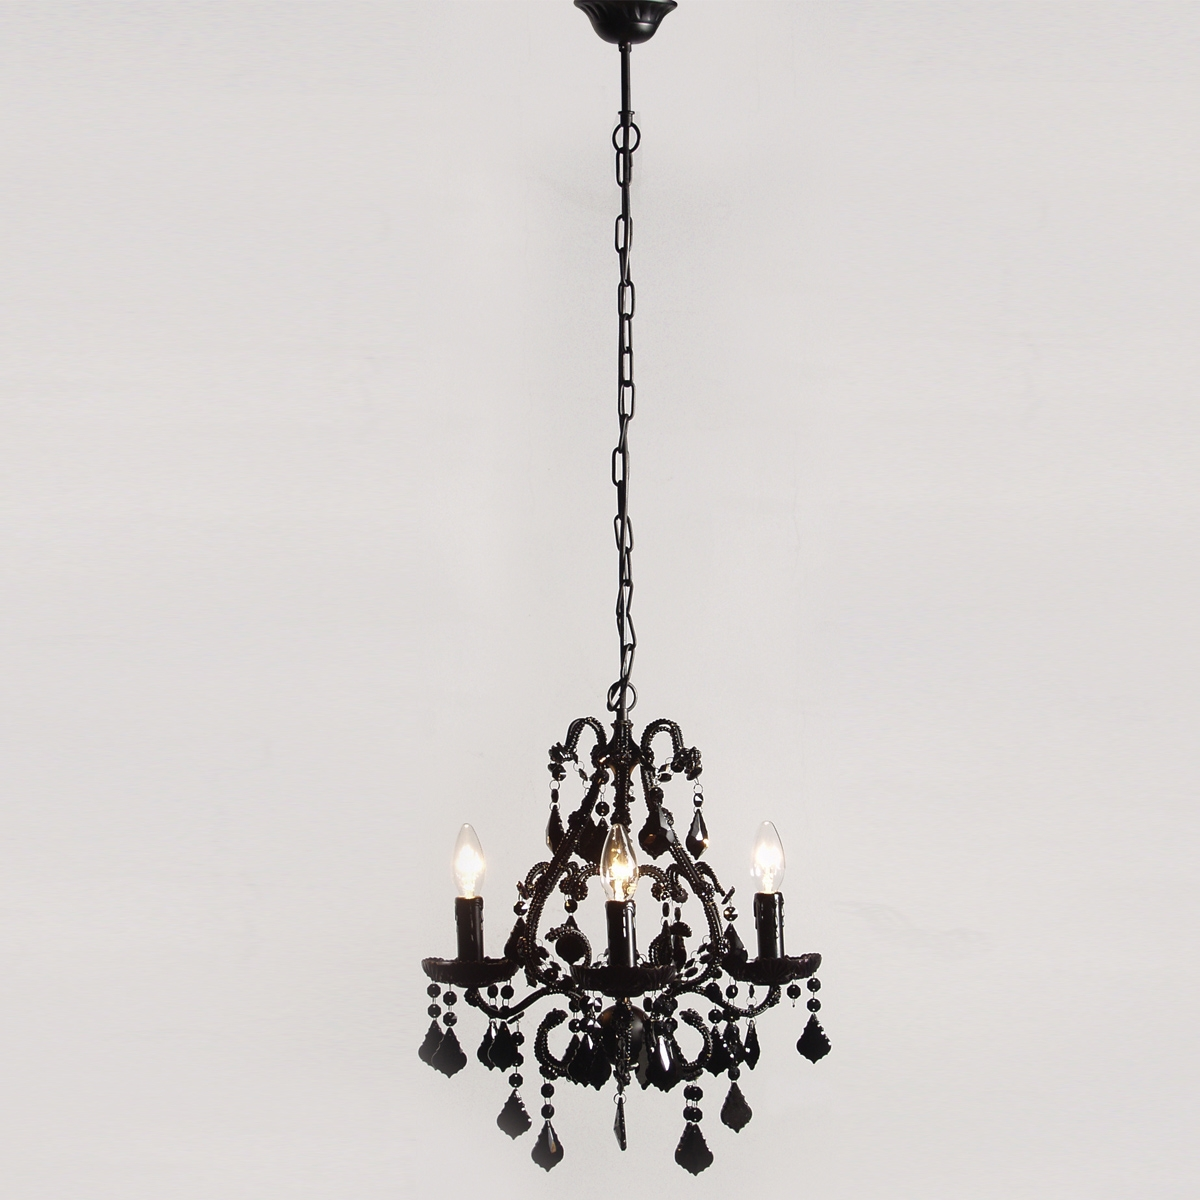 Black Chandeliers For Bedroom Lighting Style Howiezine With Grey Chandeliers (Image 5 of 25)